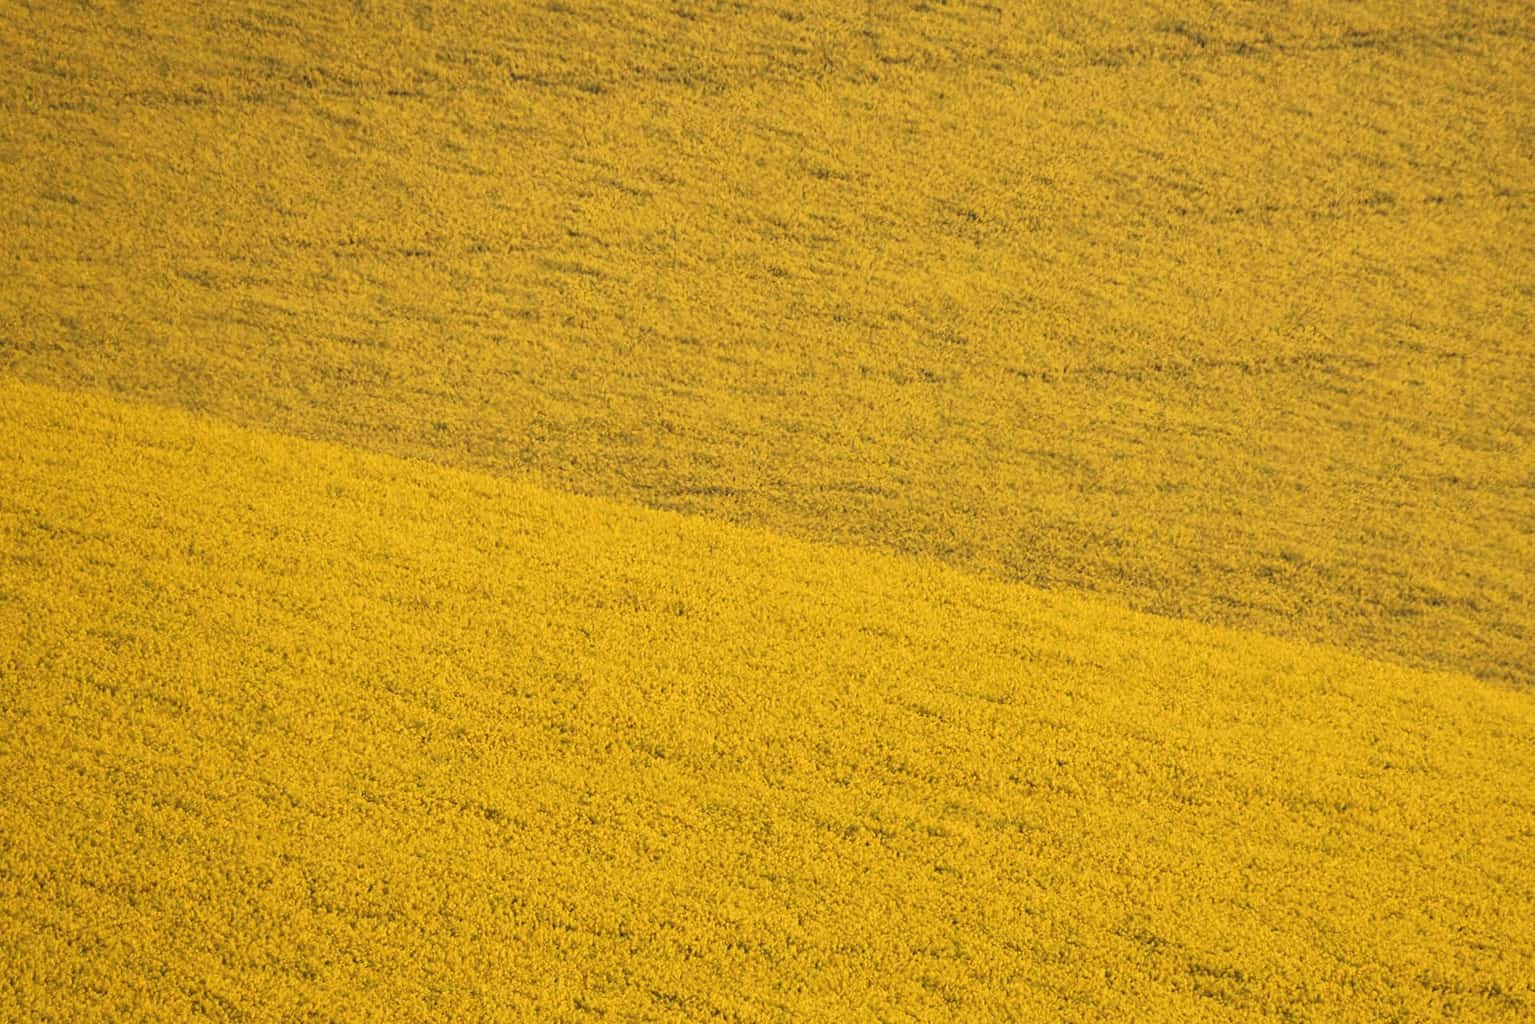 A yellow field by Rick McEvoy- Photographer in Dorset